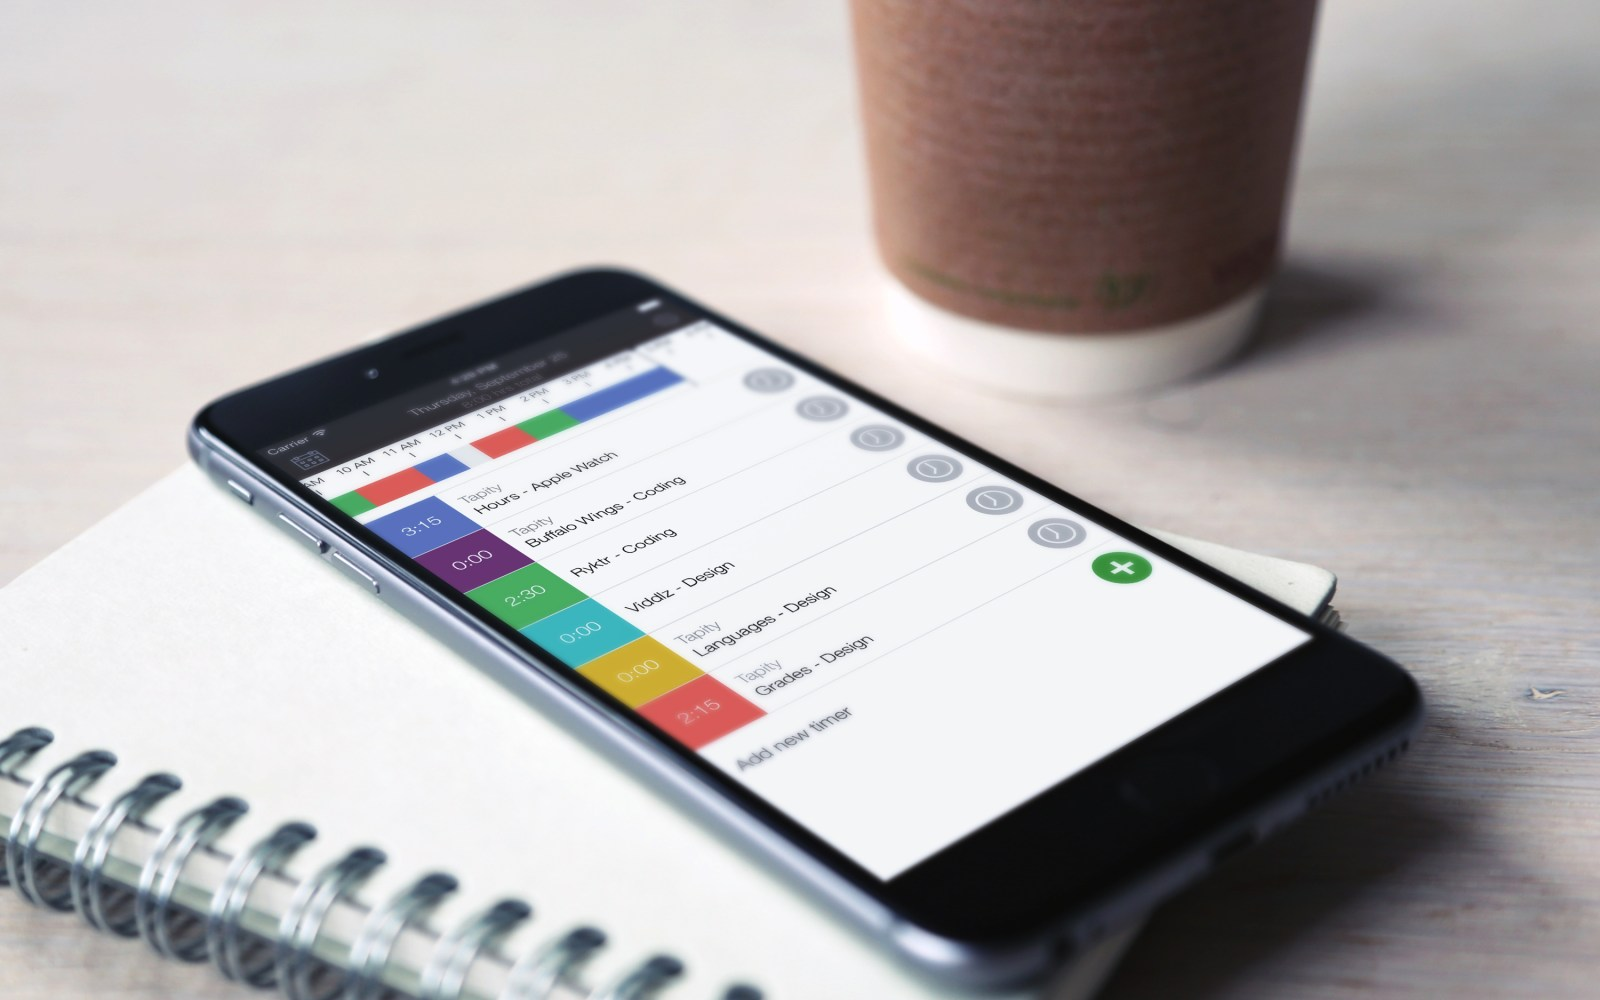 Hours Time Tracking app from Apple Design Award winner Tapity goes free for the very first time ($7 value)